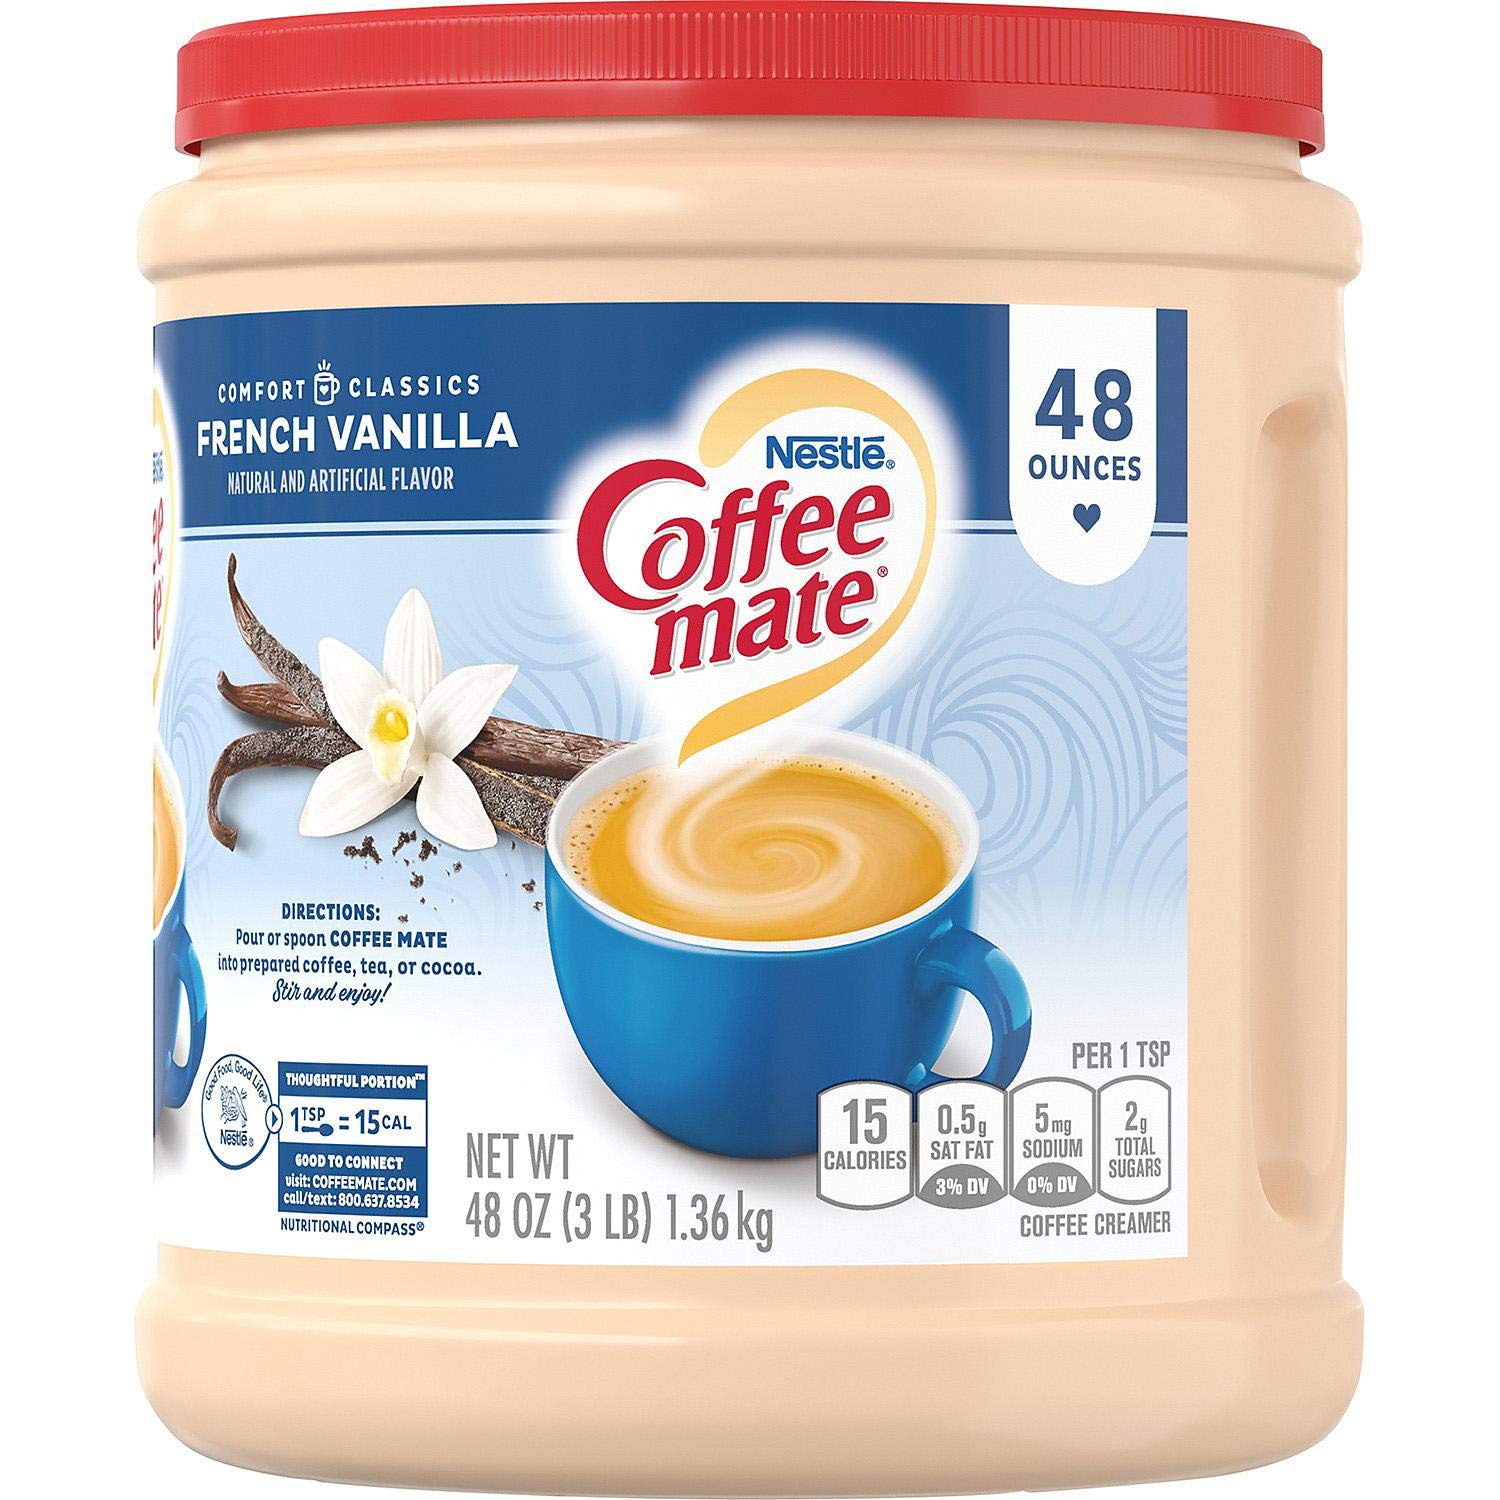 Nestle Coffee-mate Powder, French Vanilla 48 oz. (pack of 3) A1 by Store-383 (Image #1)